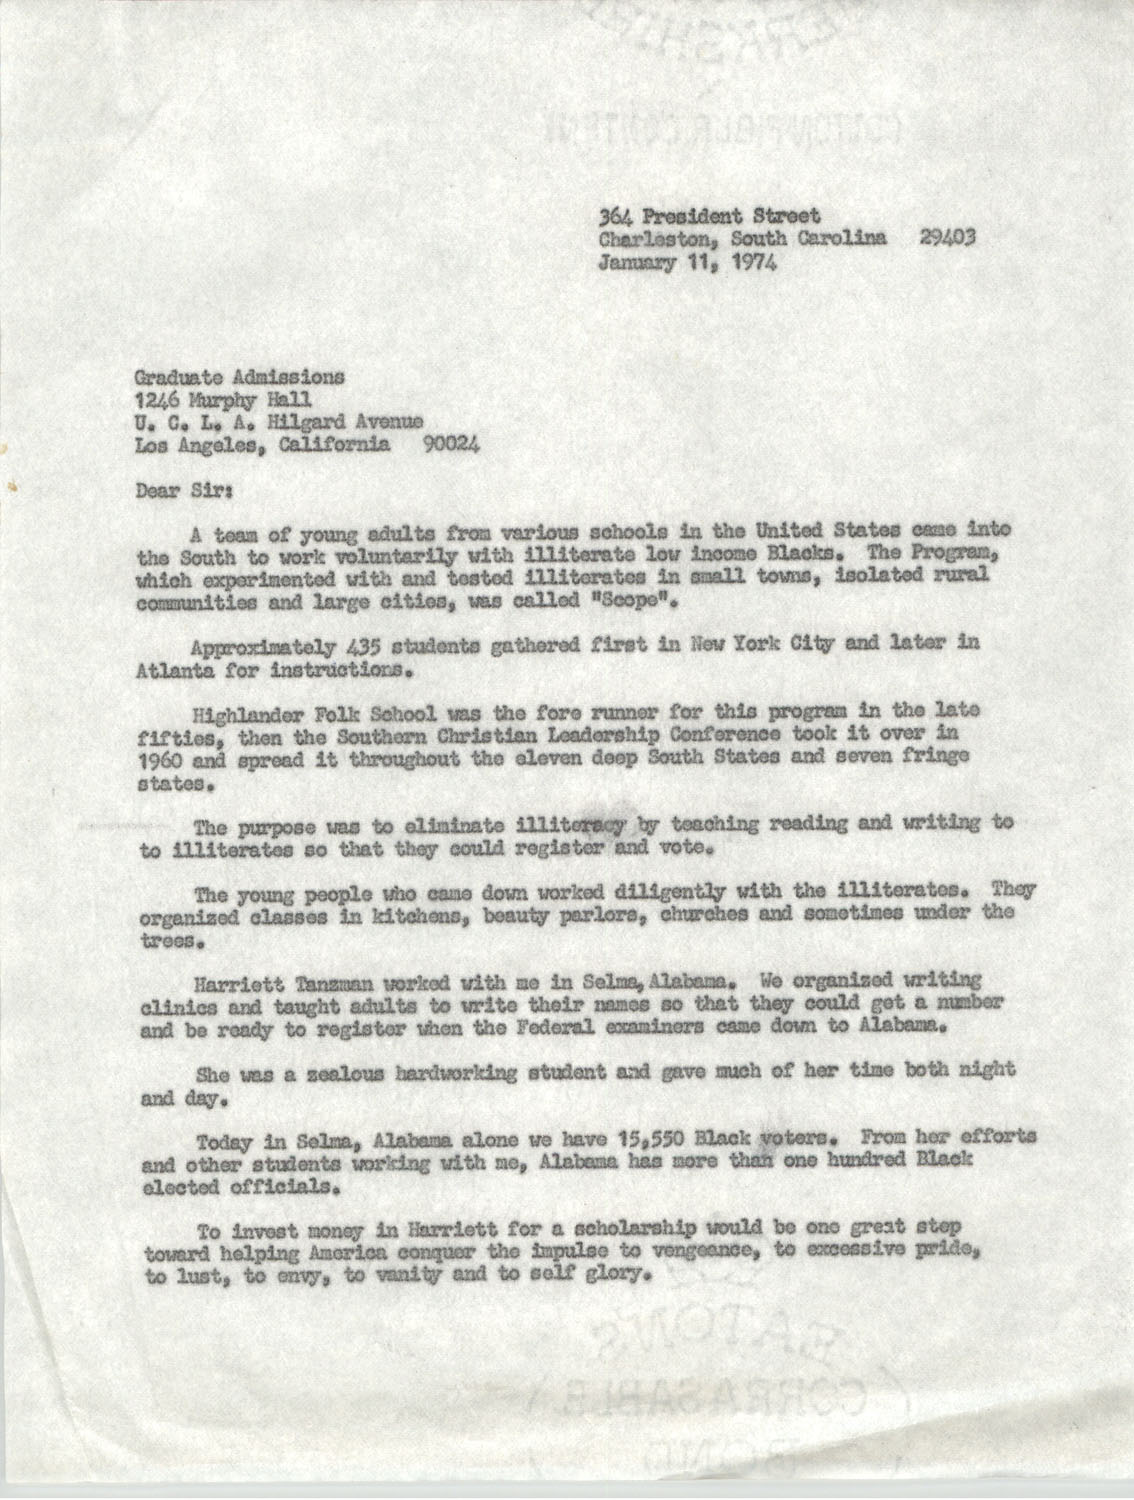 Letter from Septima P. Clark to Graduate Admissions at U.C.L.A., January 9, 1974